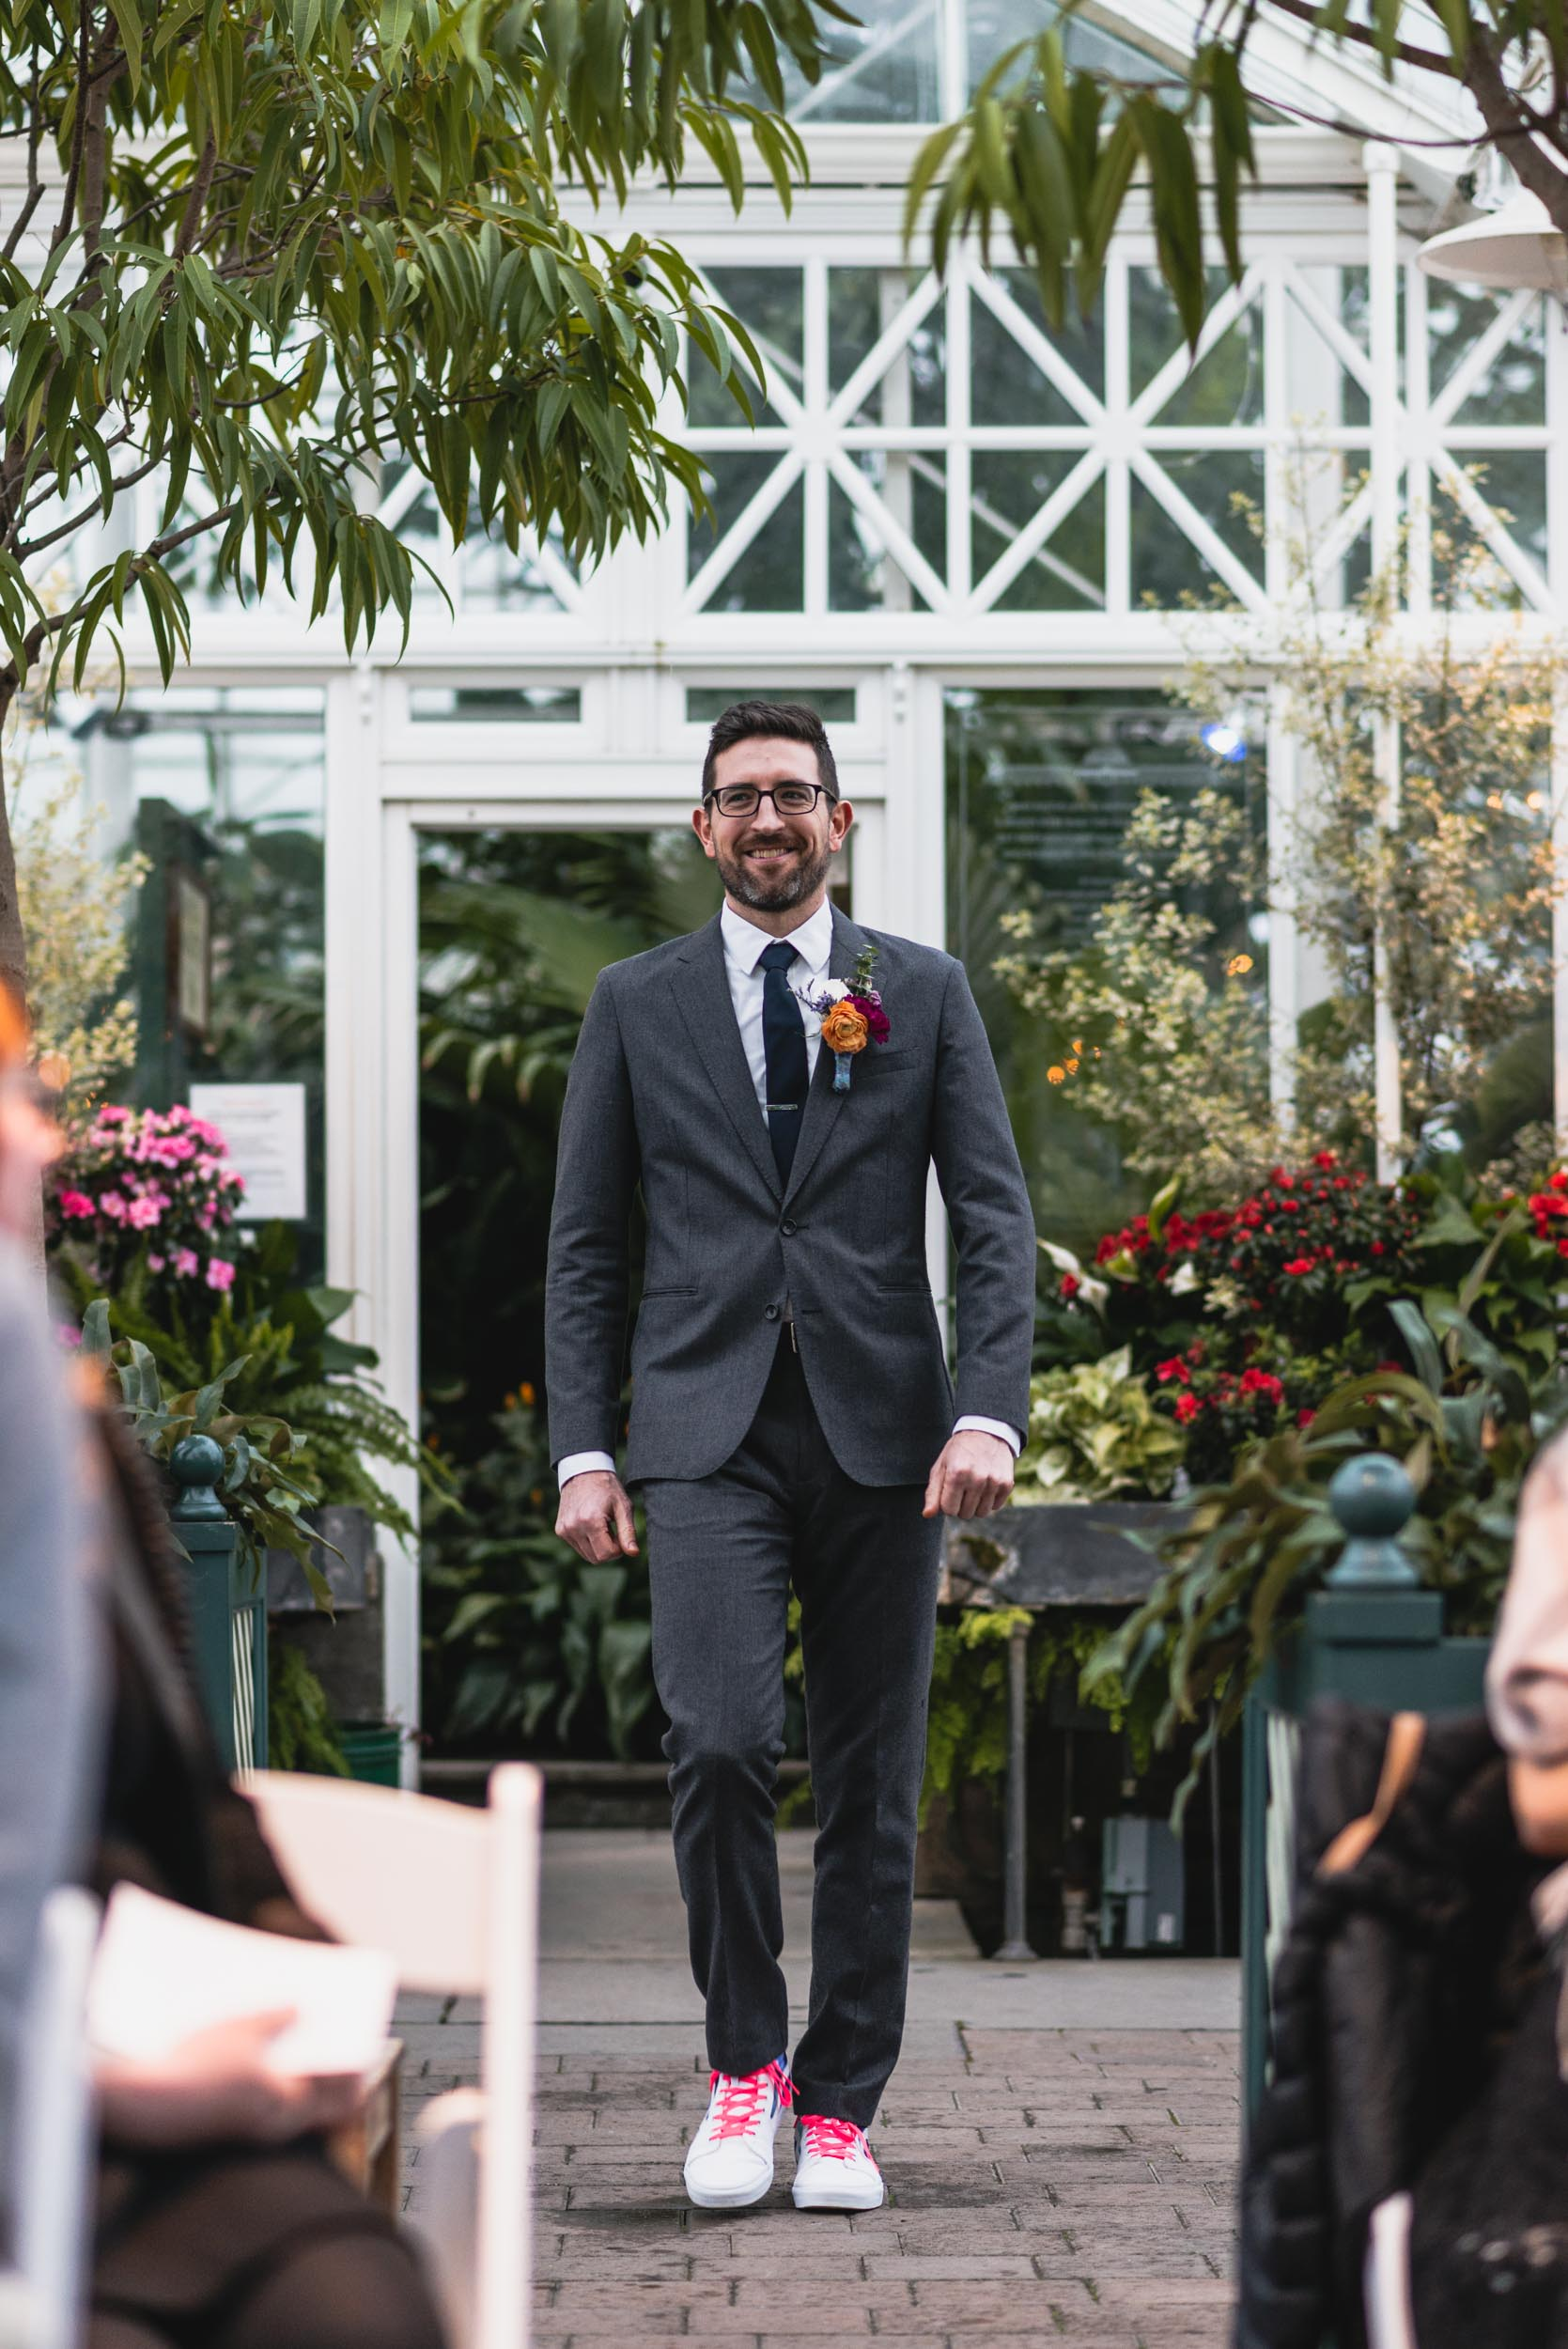 Groom walks down aisle